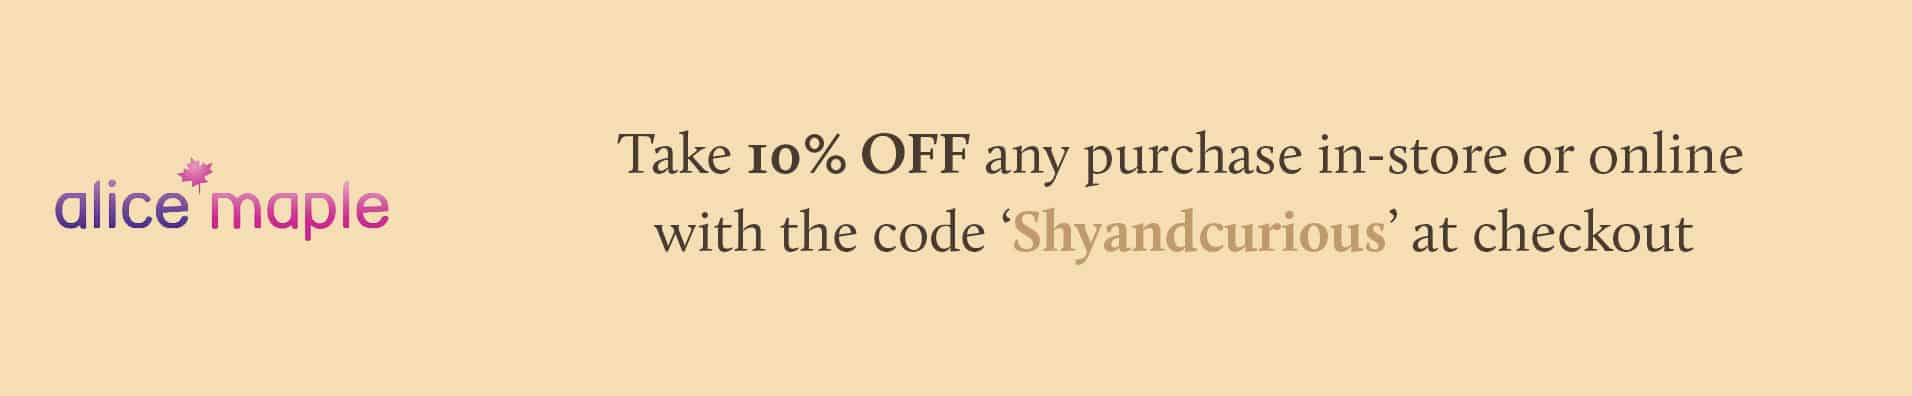 Take 10% OFF any purchase in-store or online with the code 'Shyandcurious' at checkout